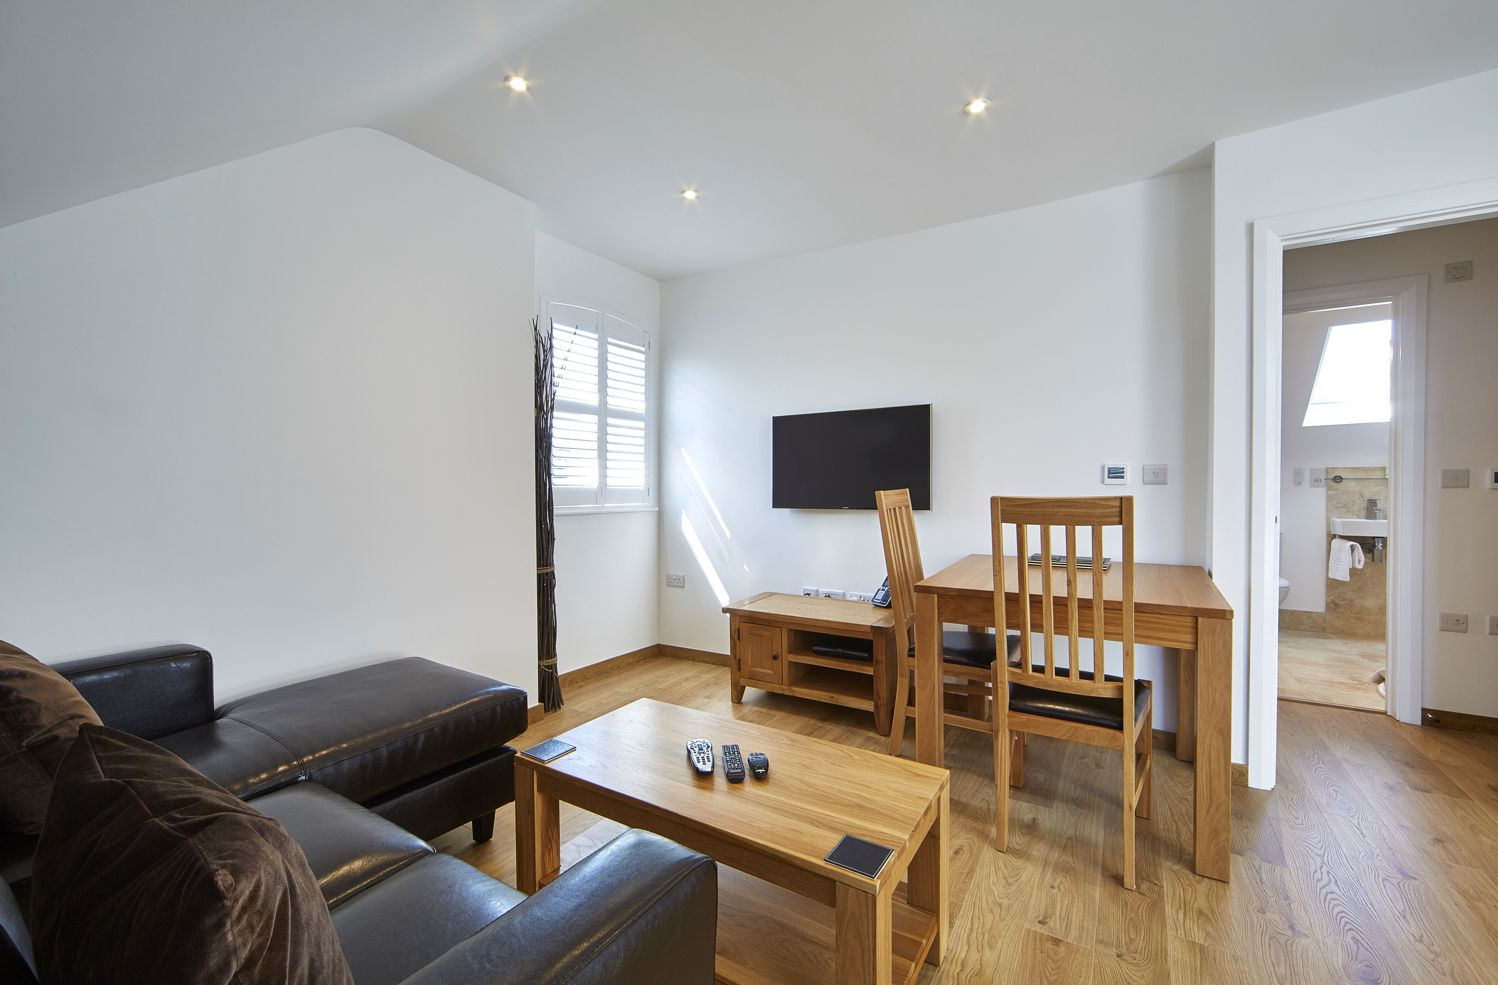 Reading-Serviced-Apartments-–-Castle-Crescent-Short-Stay-Accommodation-Berkshire.-Budget-Accommodation-Reading---Cheap-Airbnb-Short-Stay-Apartments-UK-|-Urban-Stay